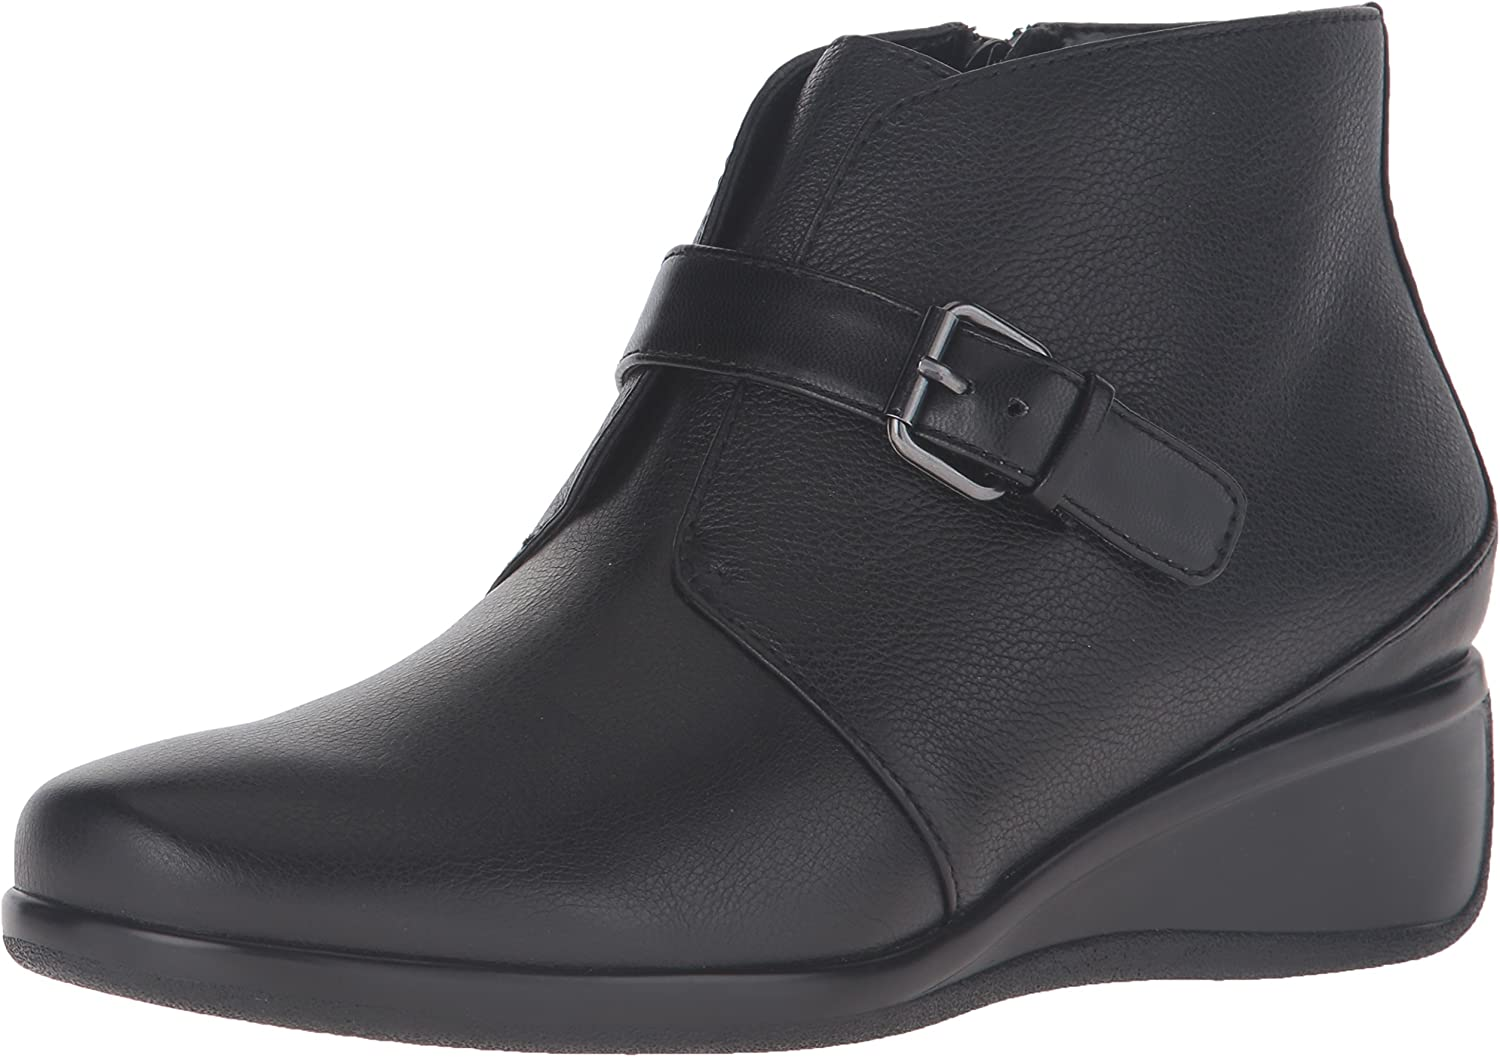 Tredters Womens Mindy Ankle Bootie